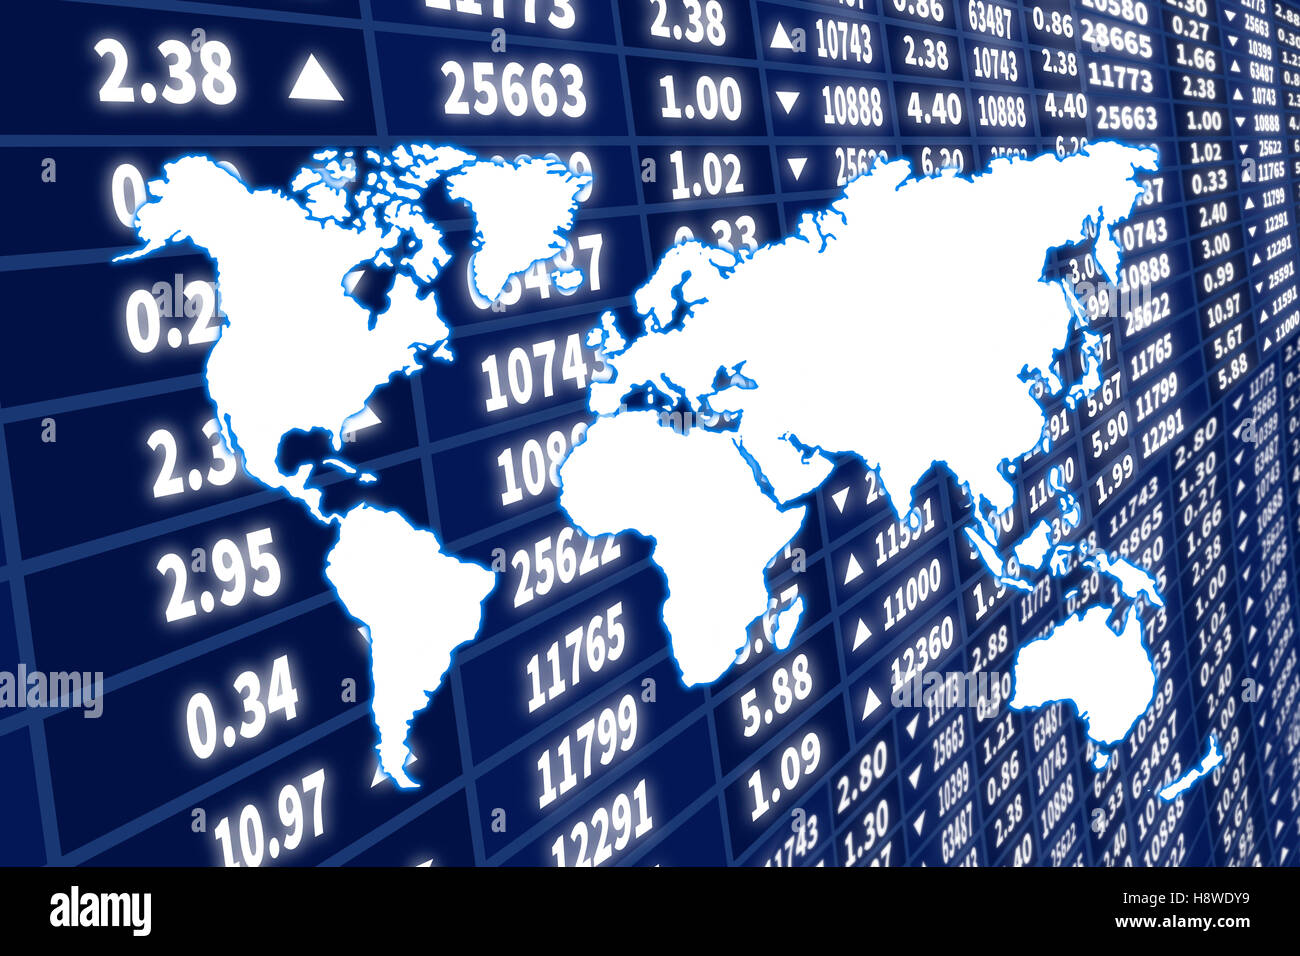 Abstract illustration of world map over stock market dynamic screen - Stock Image